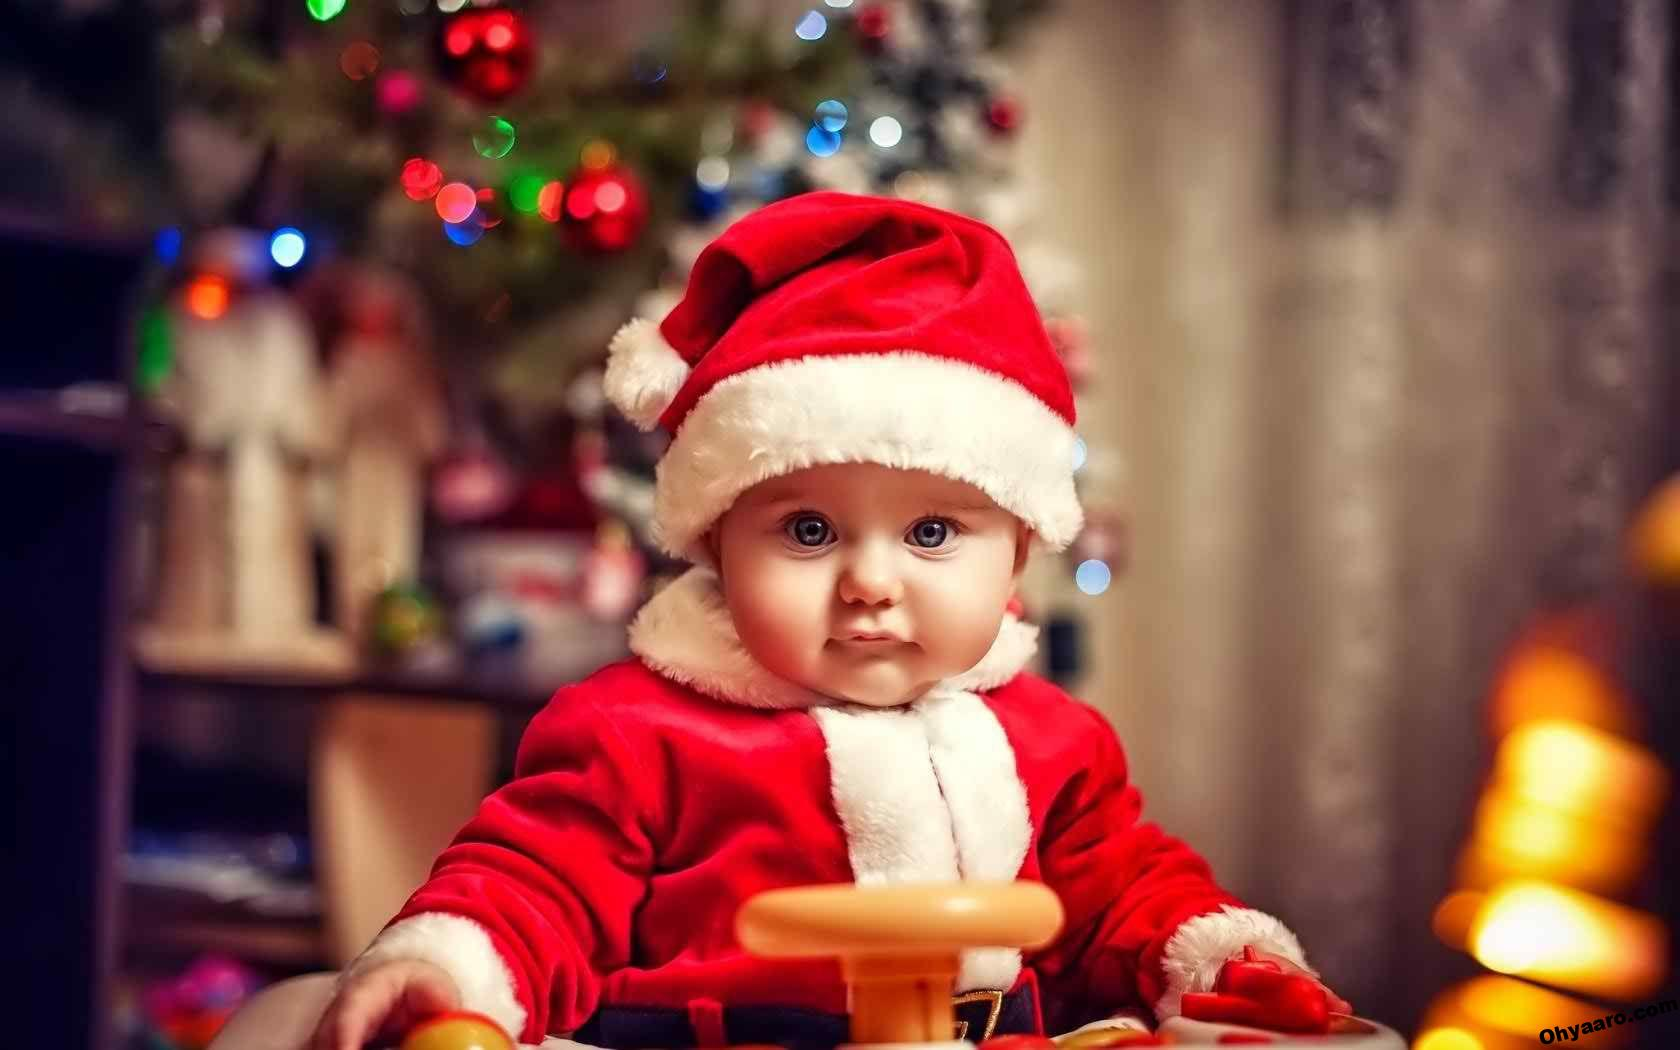 Cute Baby Santa Claus Images Download Merry Christmas Baby